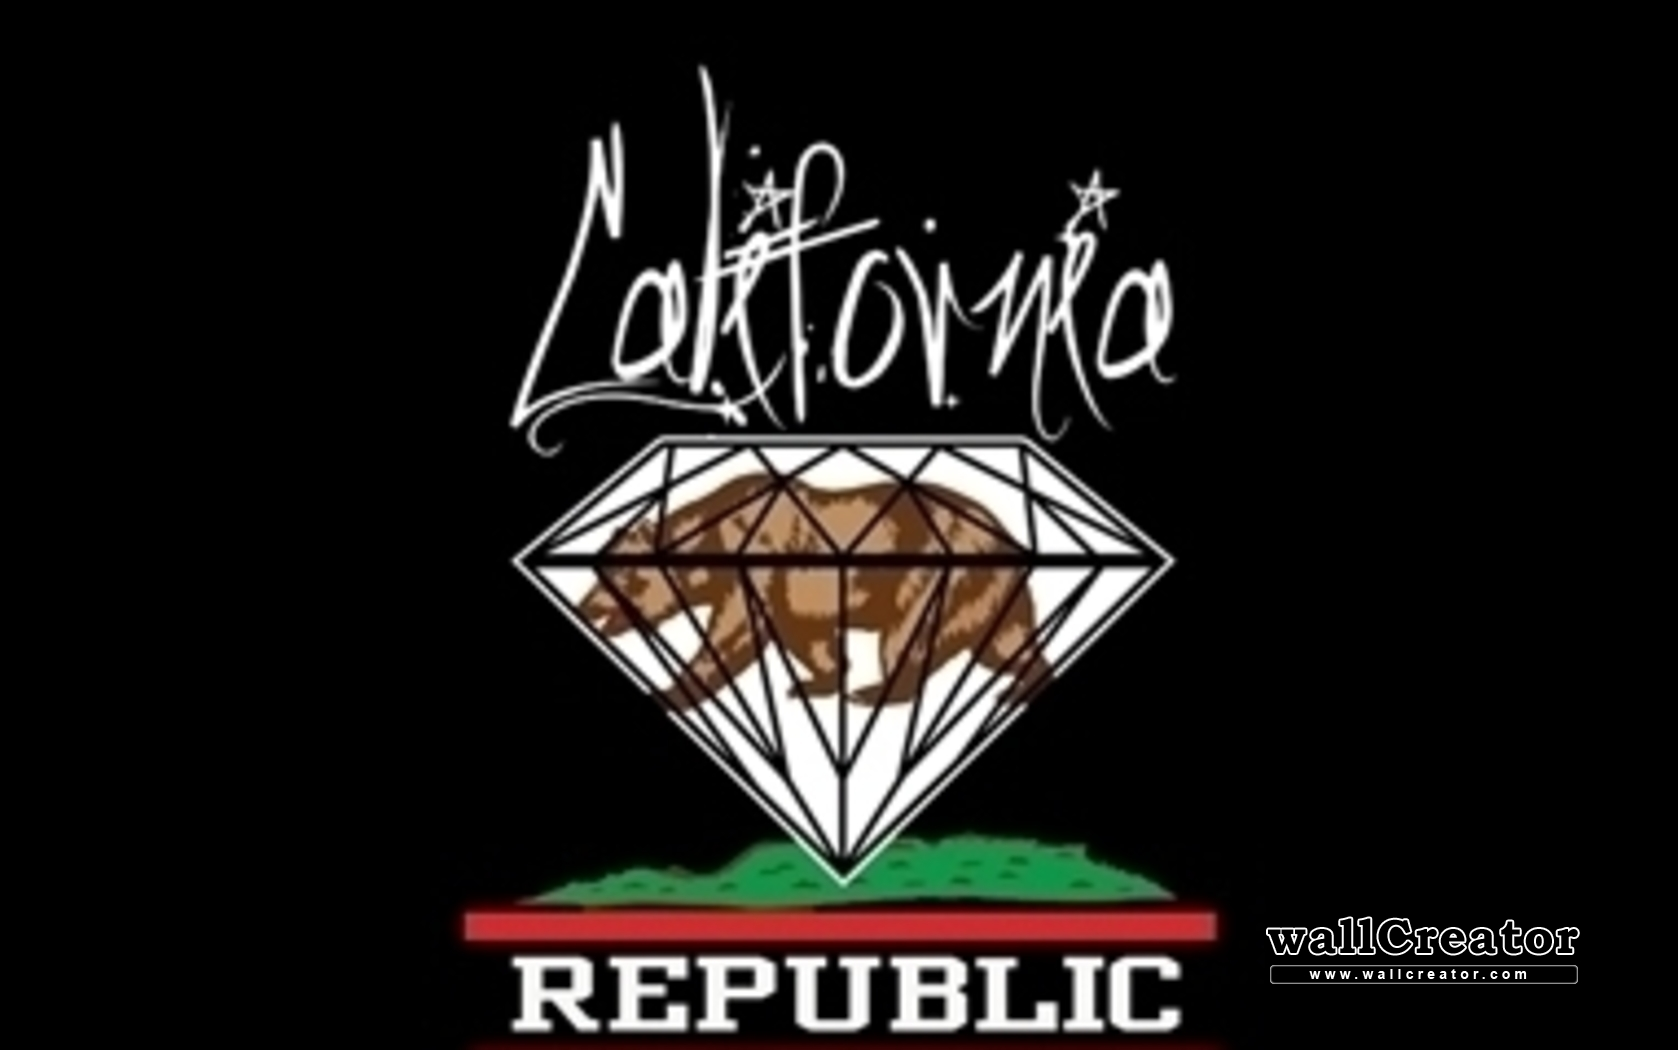 supply co wallpapers lovely diamond supply co wallpapers hd picture 1678x1050